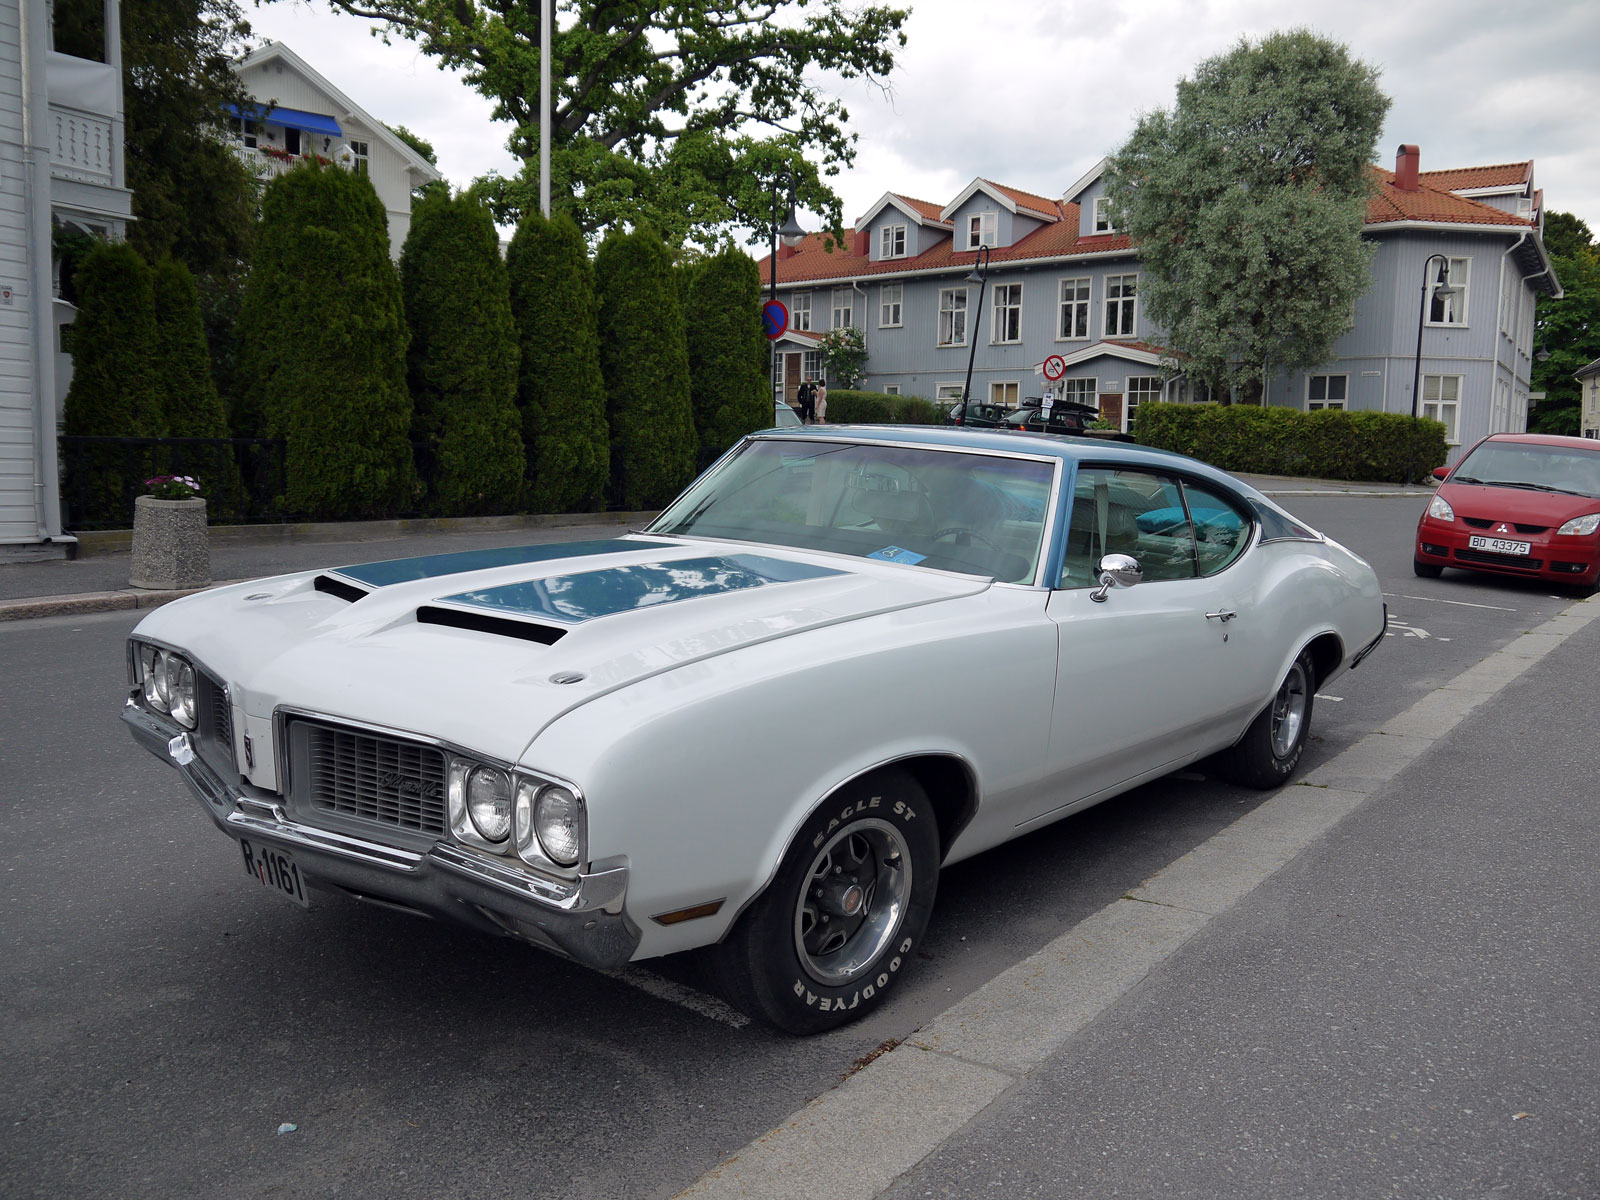 1970 OLDSMOBILE CUTLASS coupe